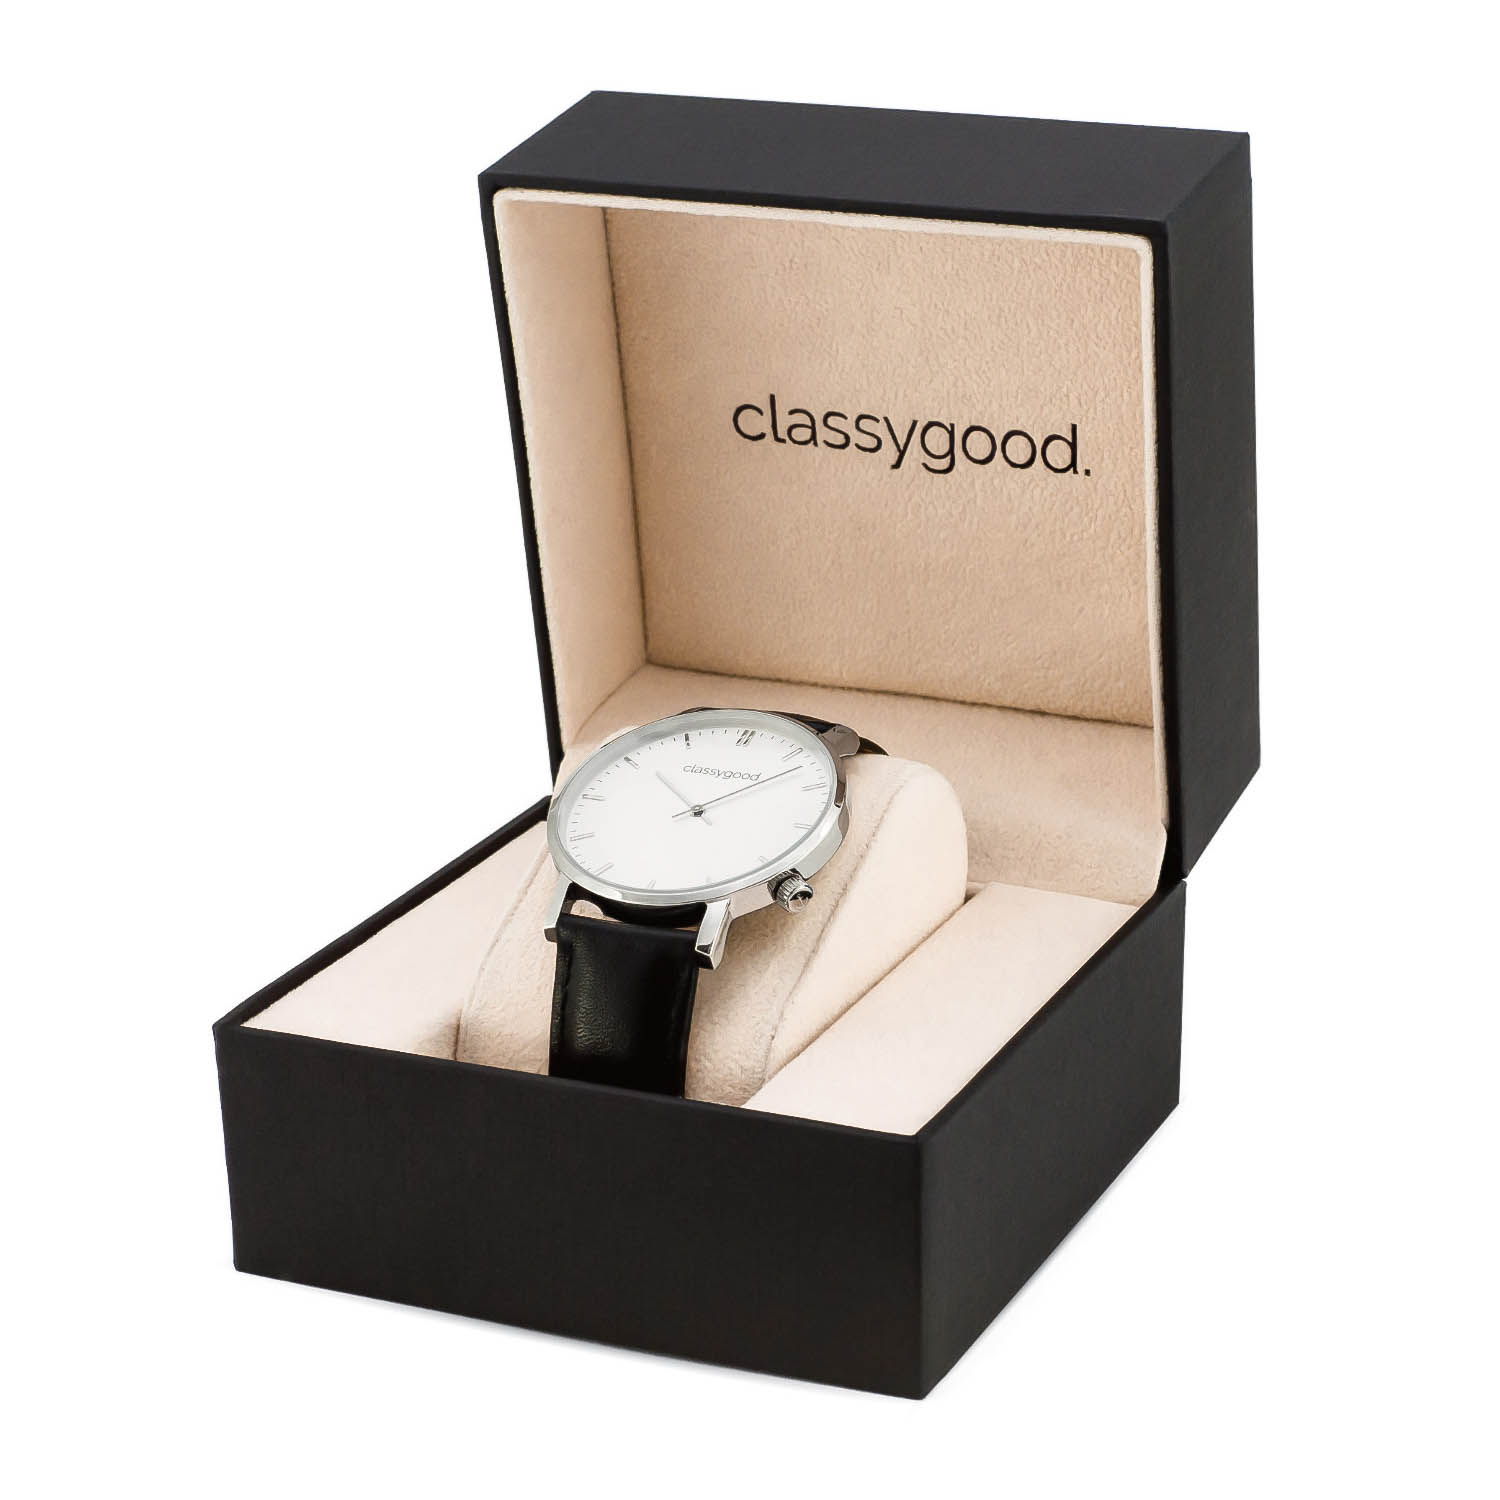 classygood Uhr Verpackung Box